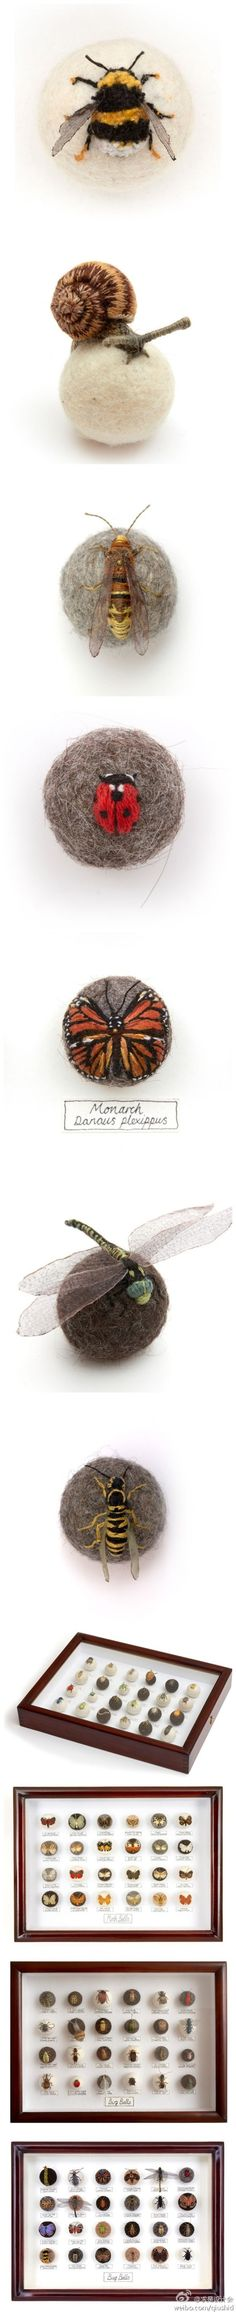 Felted and embroidered insect collection by Claire Moynihan